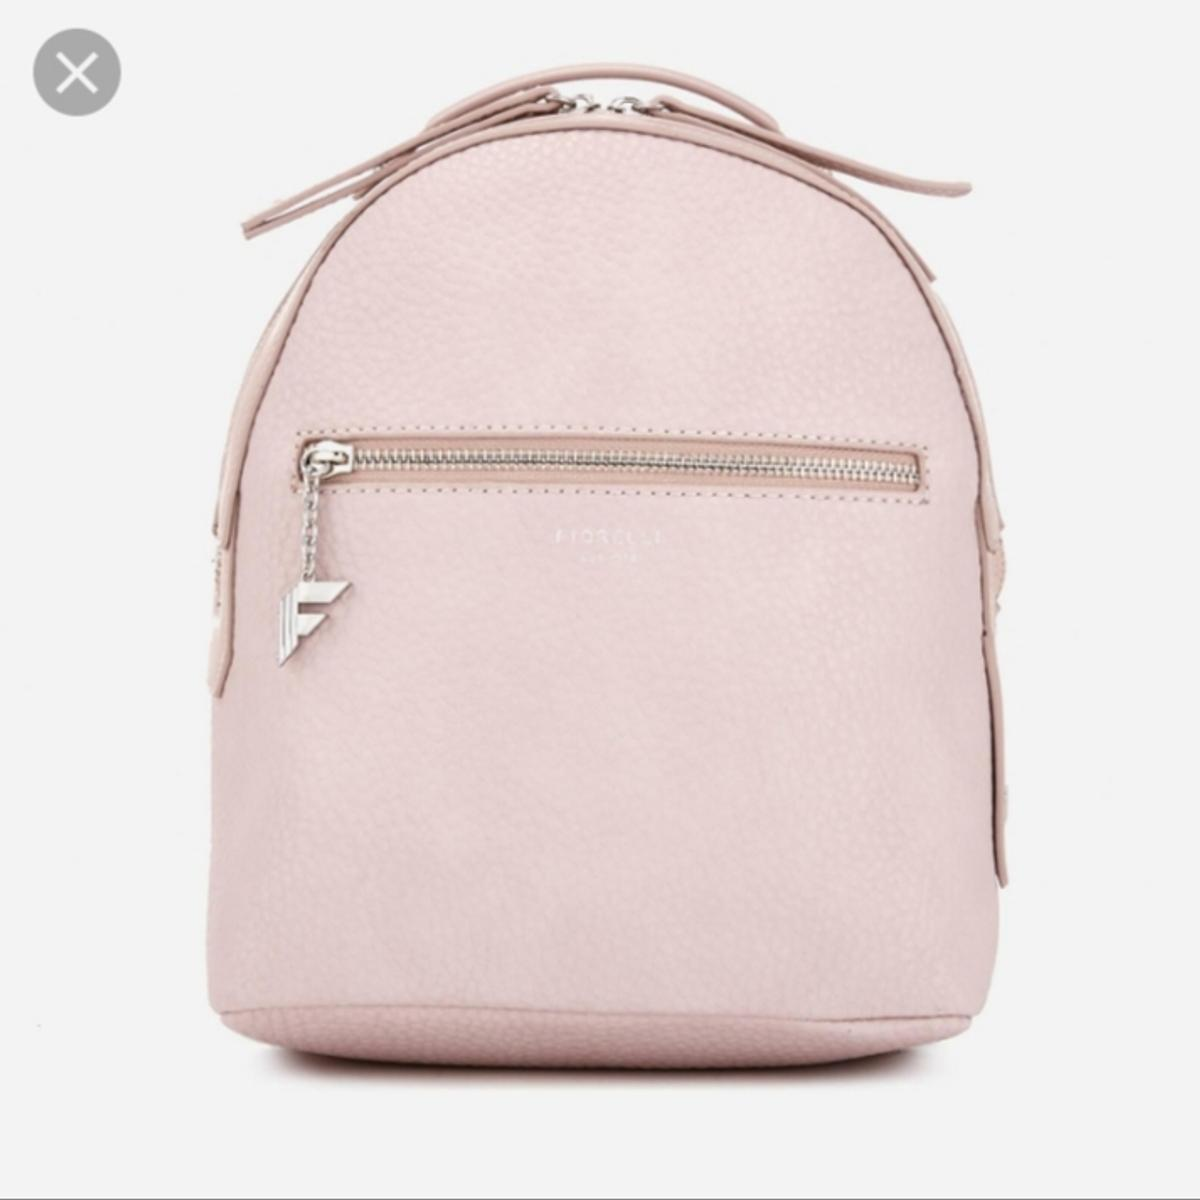 Fiorelli Backpack Pink in M11 Manchester for £35.00 for sale - Shpock